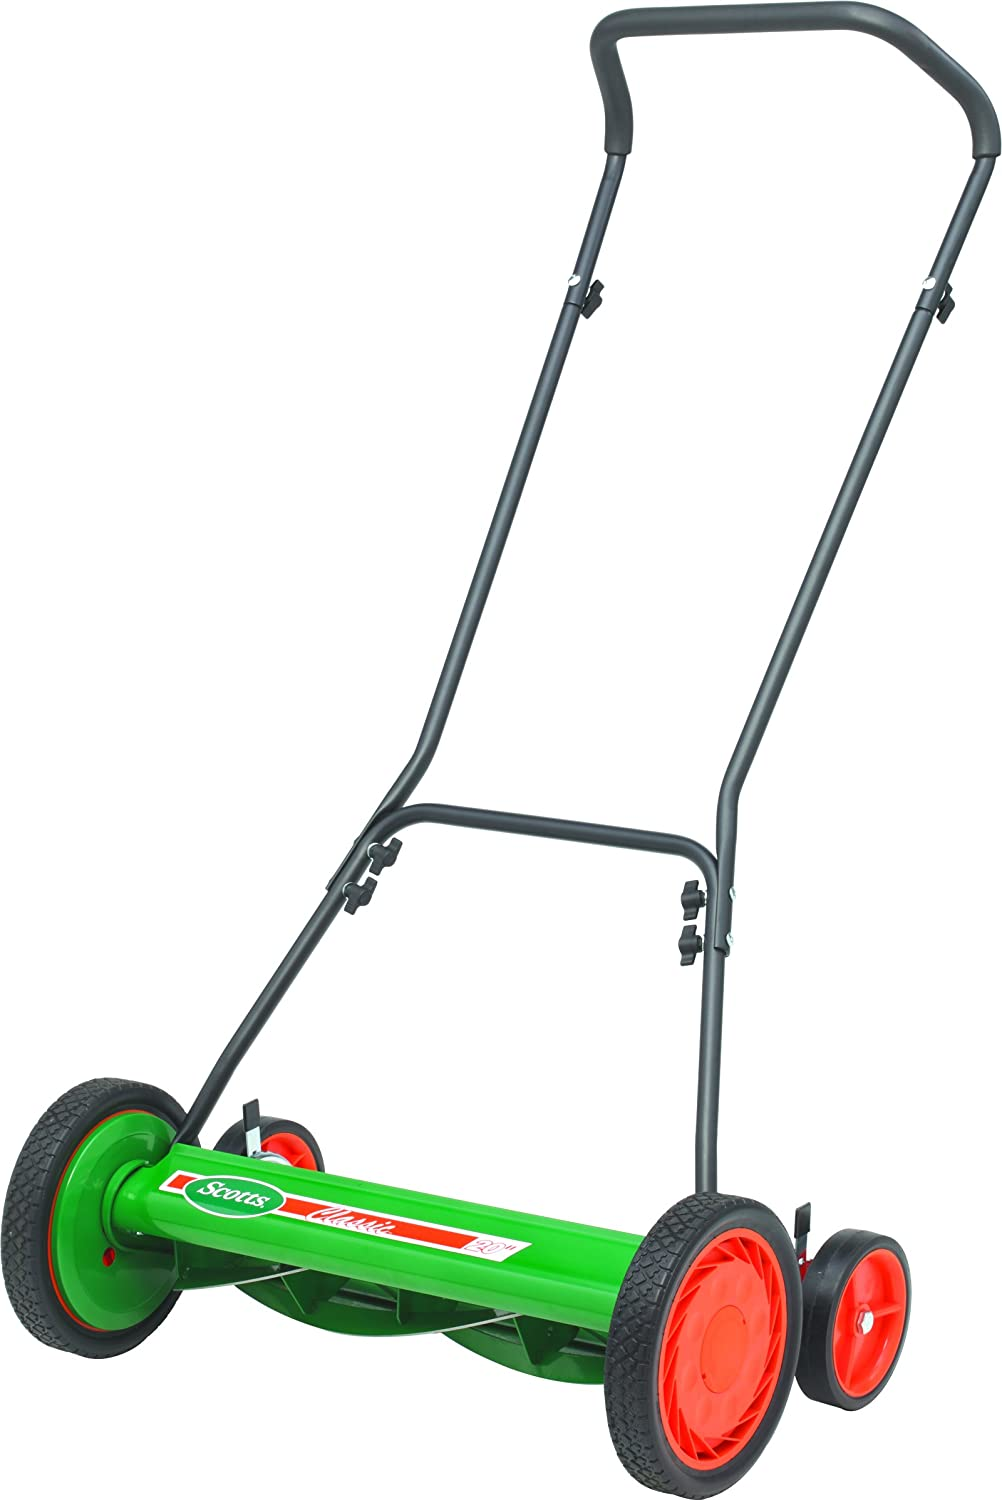 Scotts 2000-20 Push Reel Lawn Mower